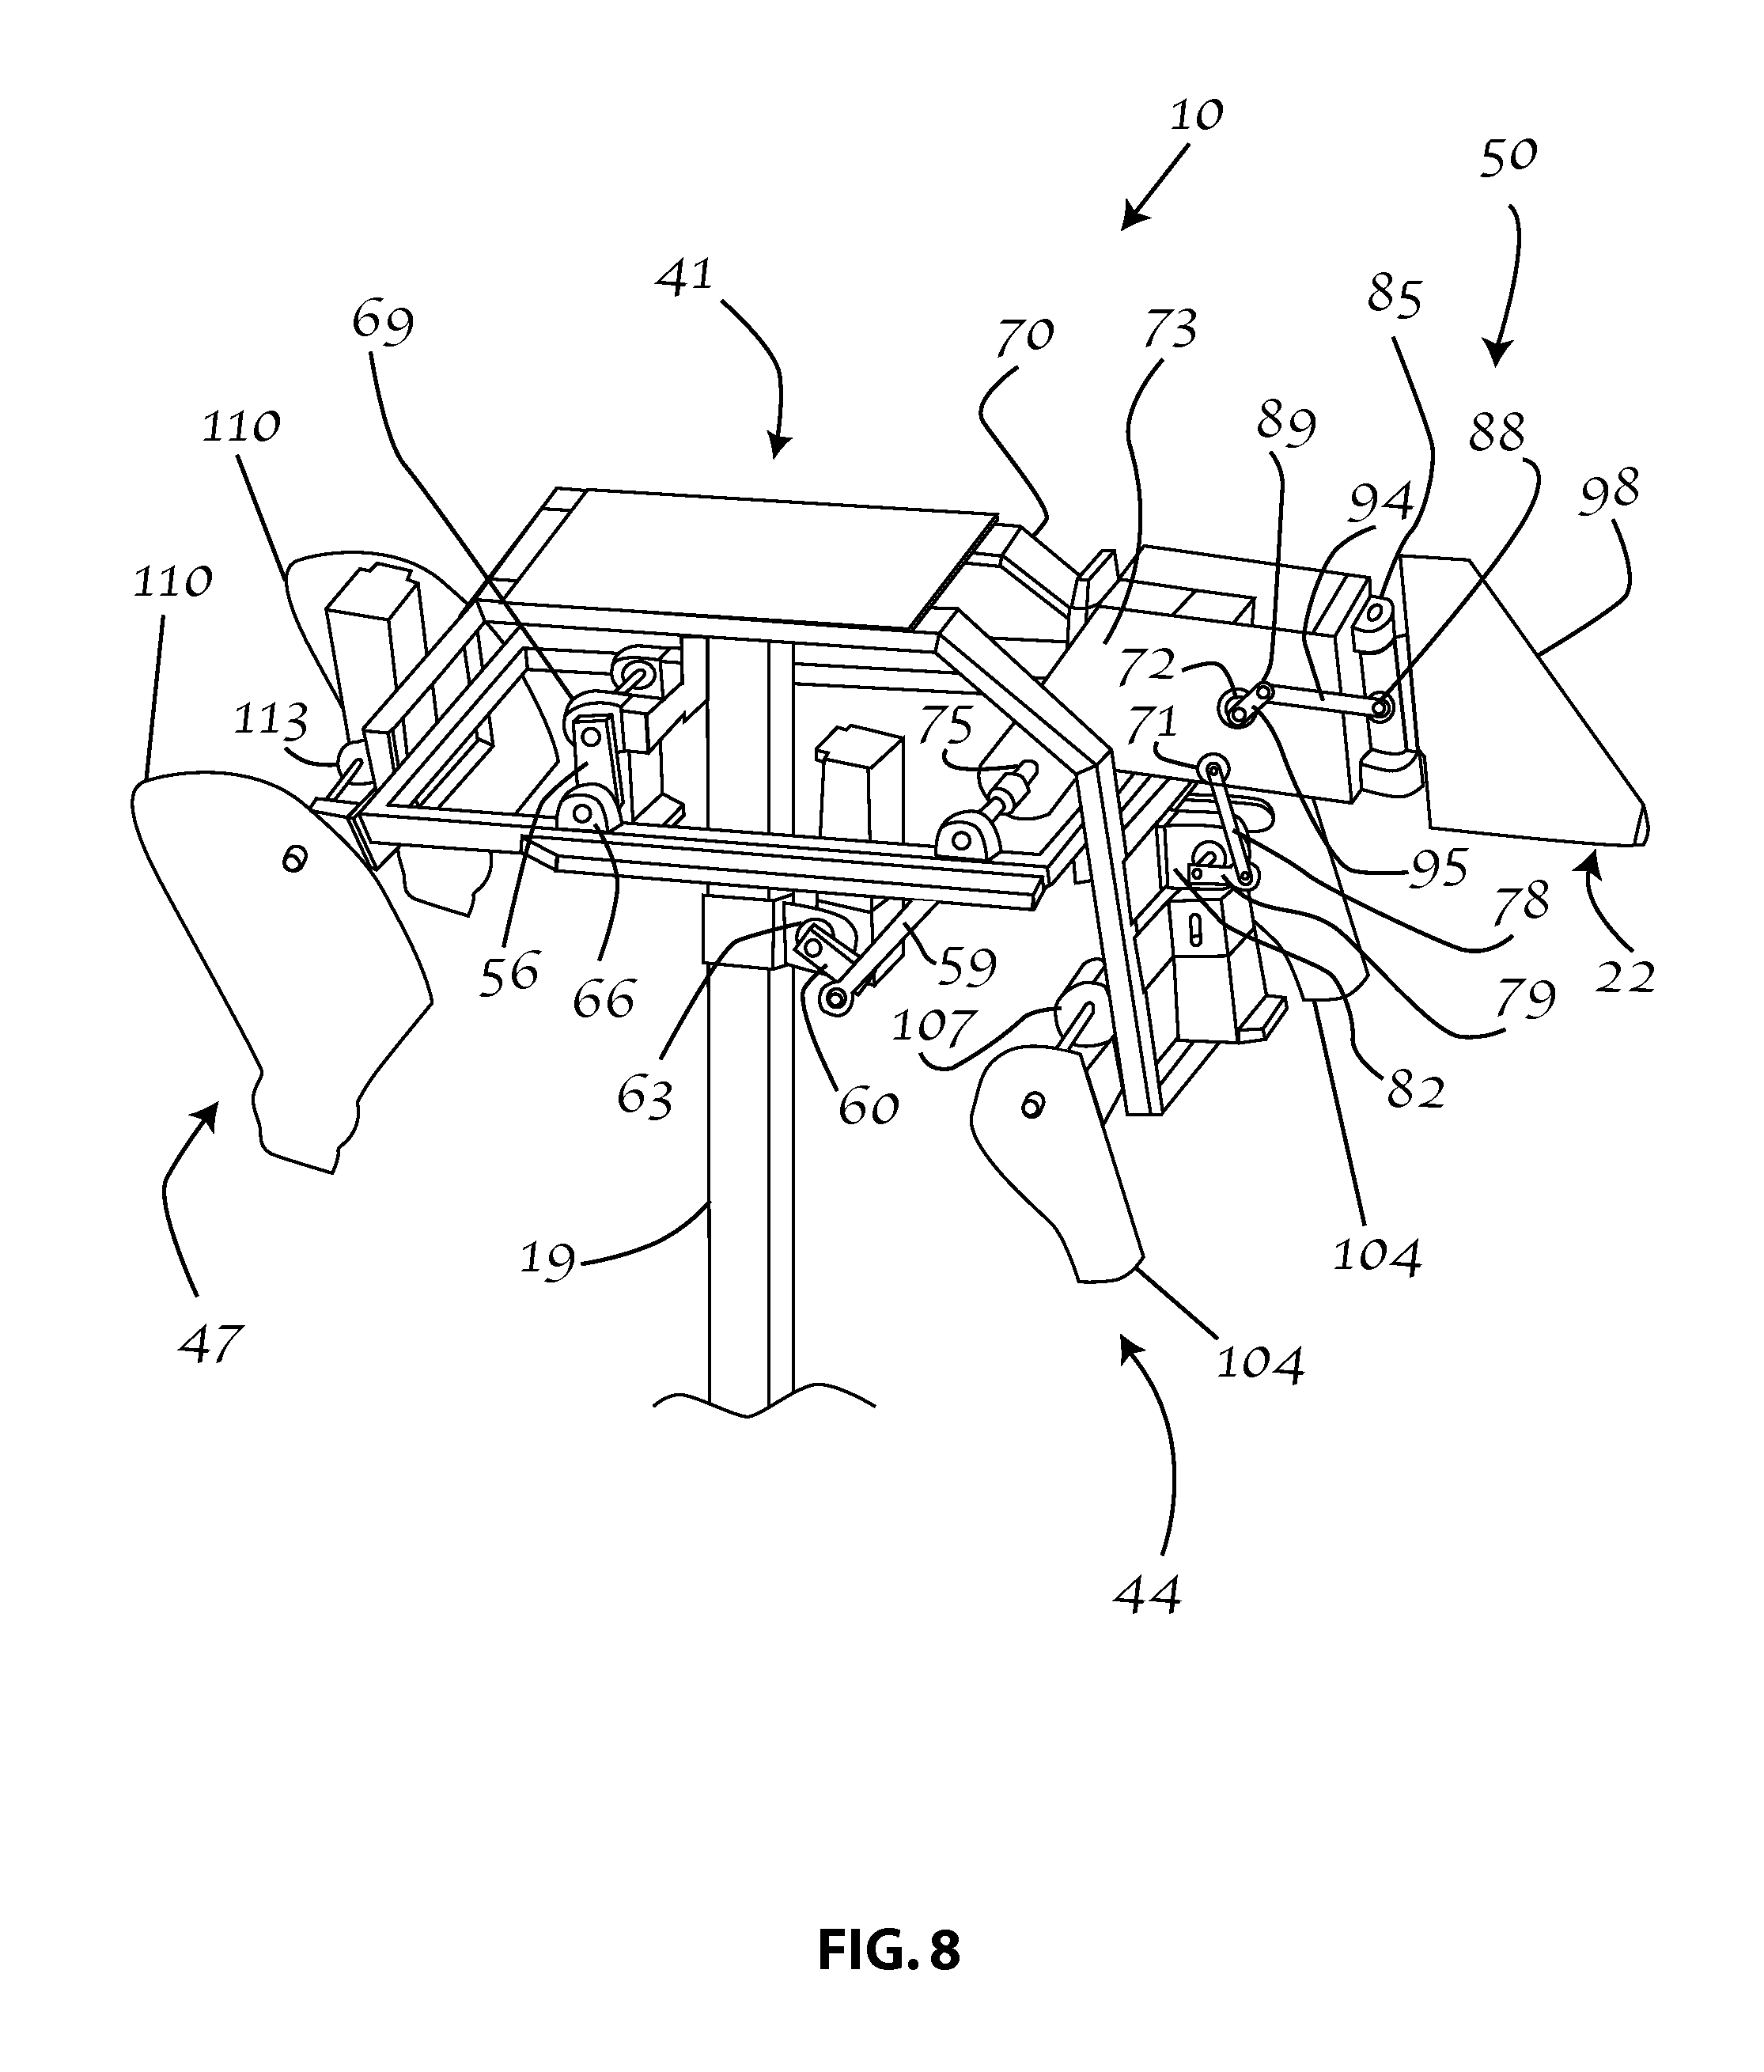 US20110275444A1 20111110 D00008 patent us20110275444 mechanical device for simulating an animal mechanical bull wiring diagram at webbmarketing.co